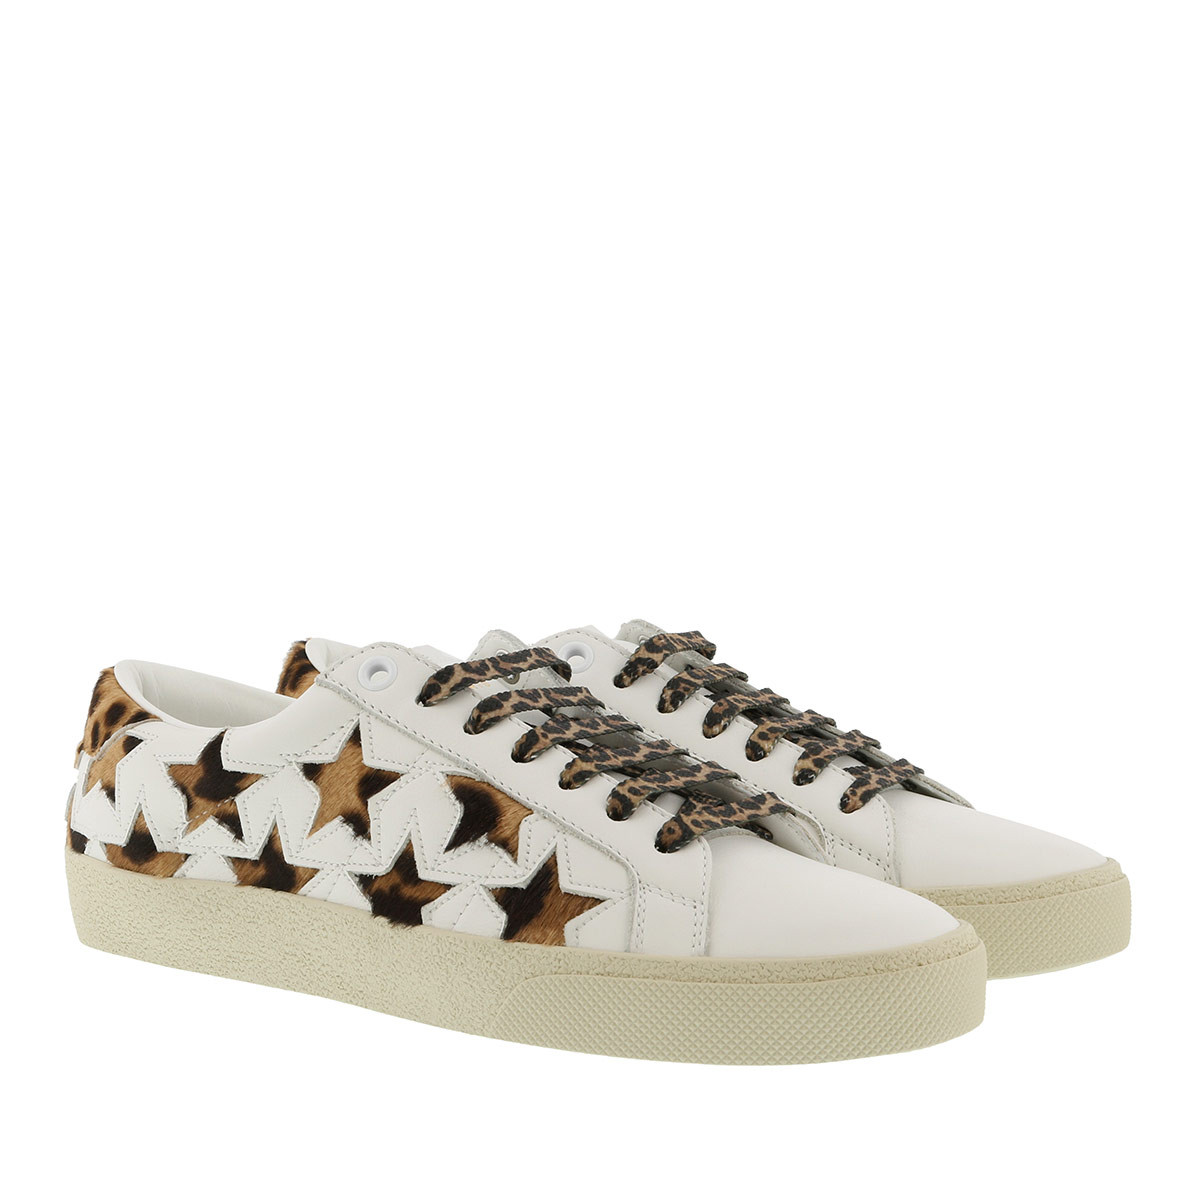 Saint Laurent Sneakers - Court Classic Leopard California Sneaker Leather Optic White - in weiß - für Damen